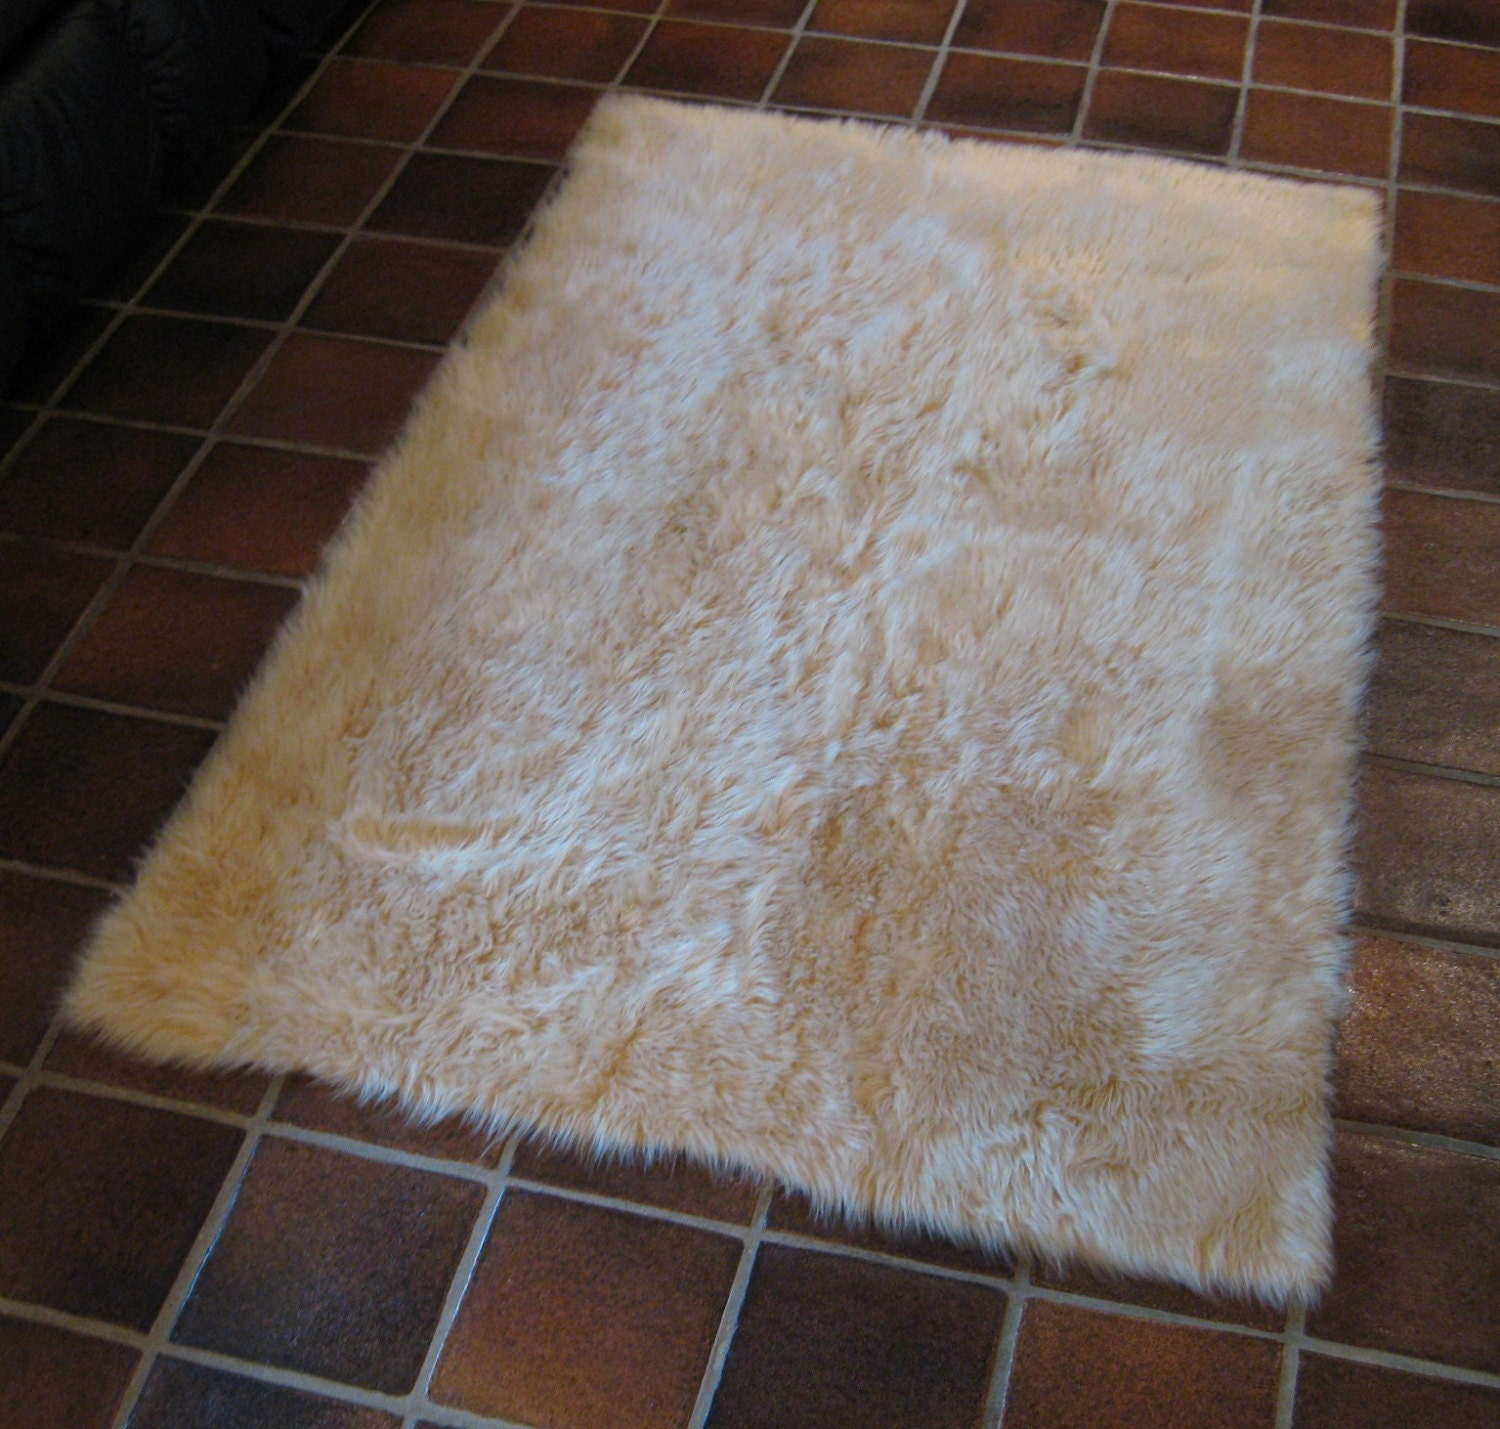 New 4 X 6 Beige Faux Fur Rug Non Slip Washable Great For All Rooms